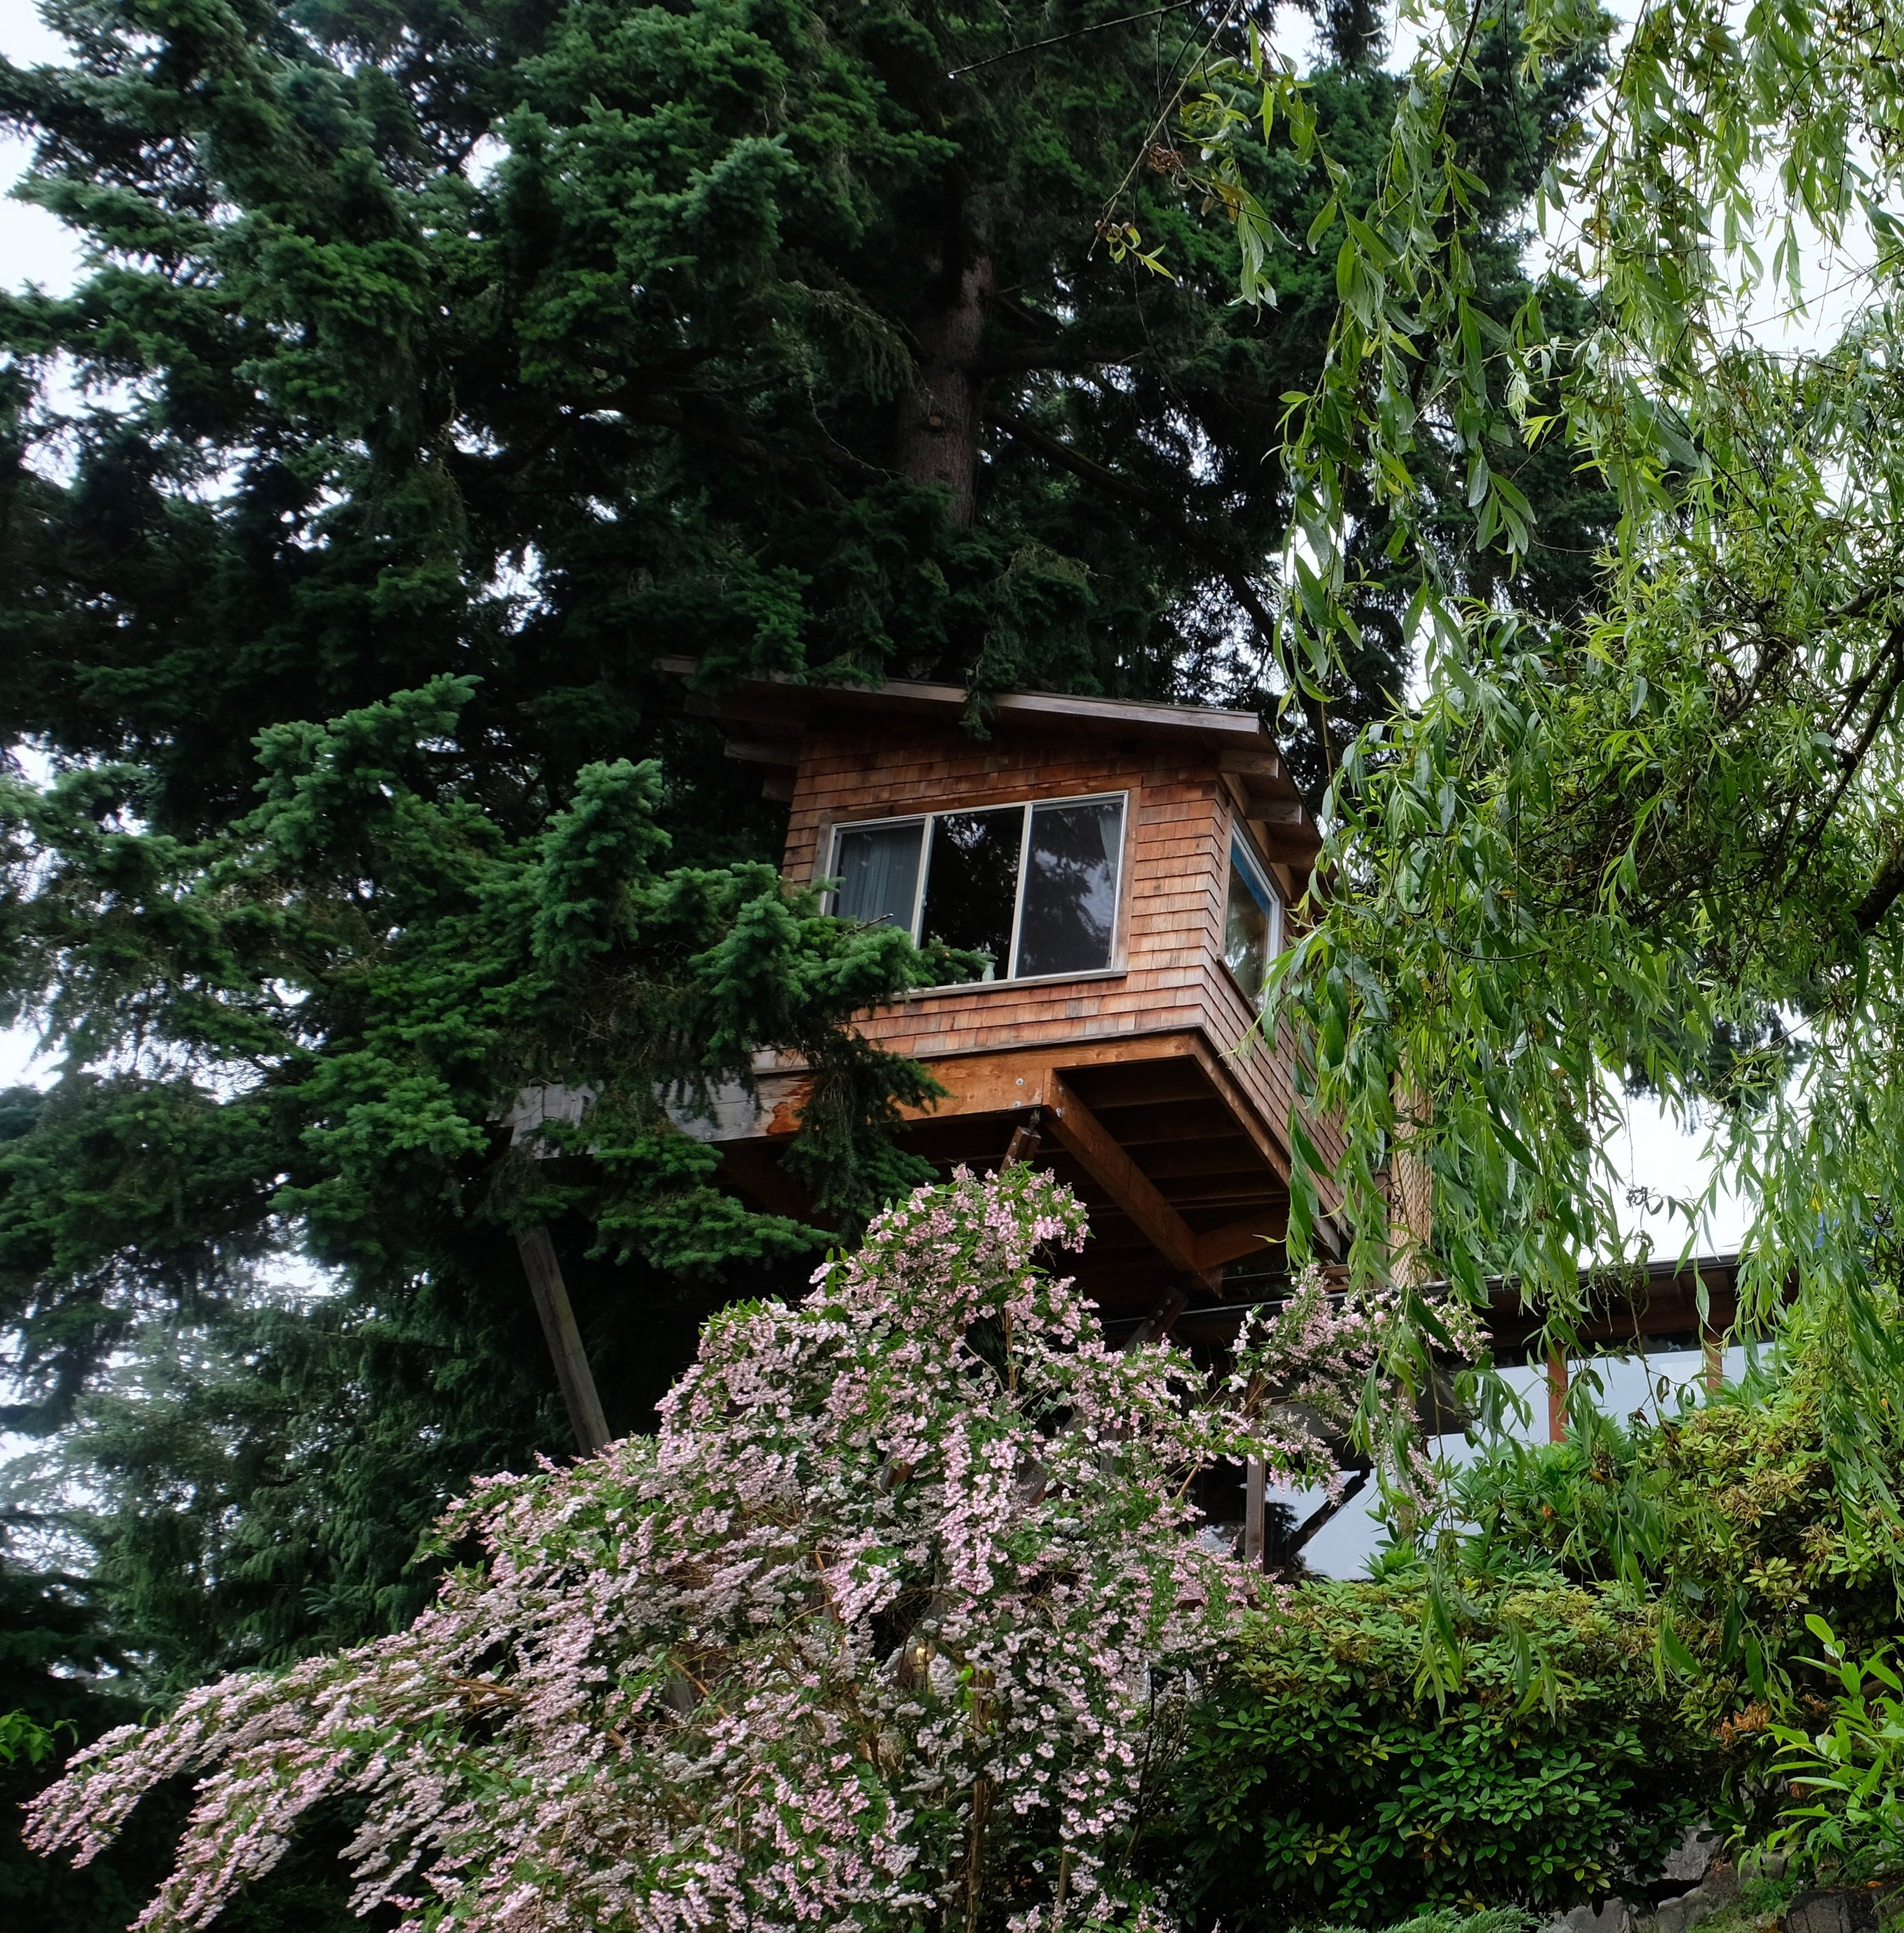 It's epic. It's an epic treehouse.